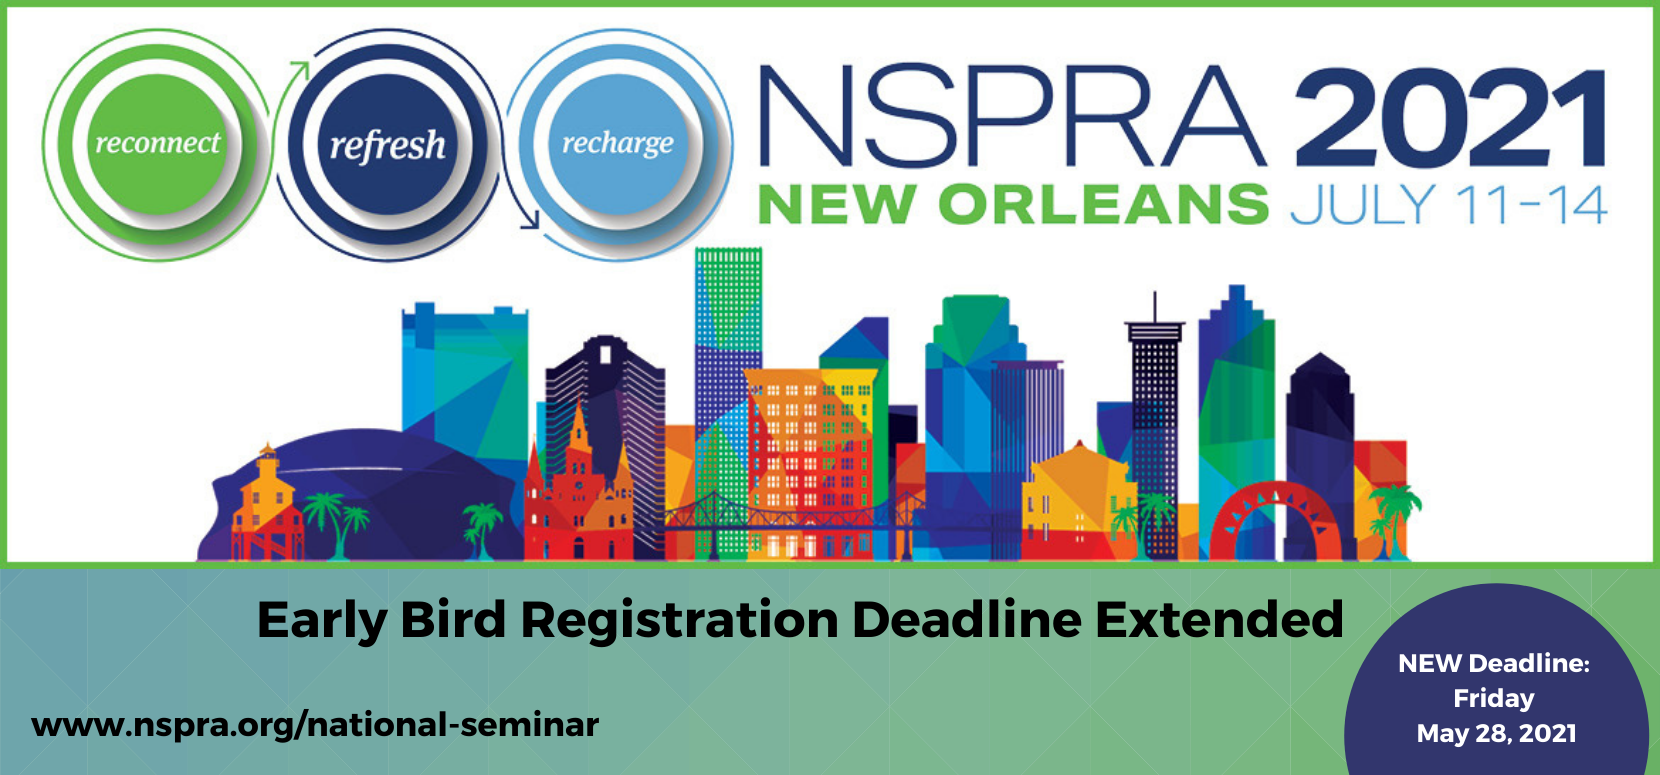 NSRPA 2021 Seminar Registration is extended to Friday, May 28